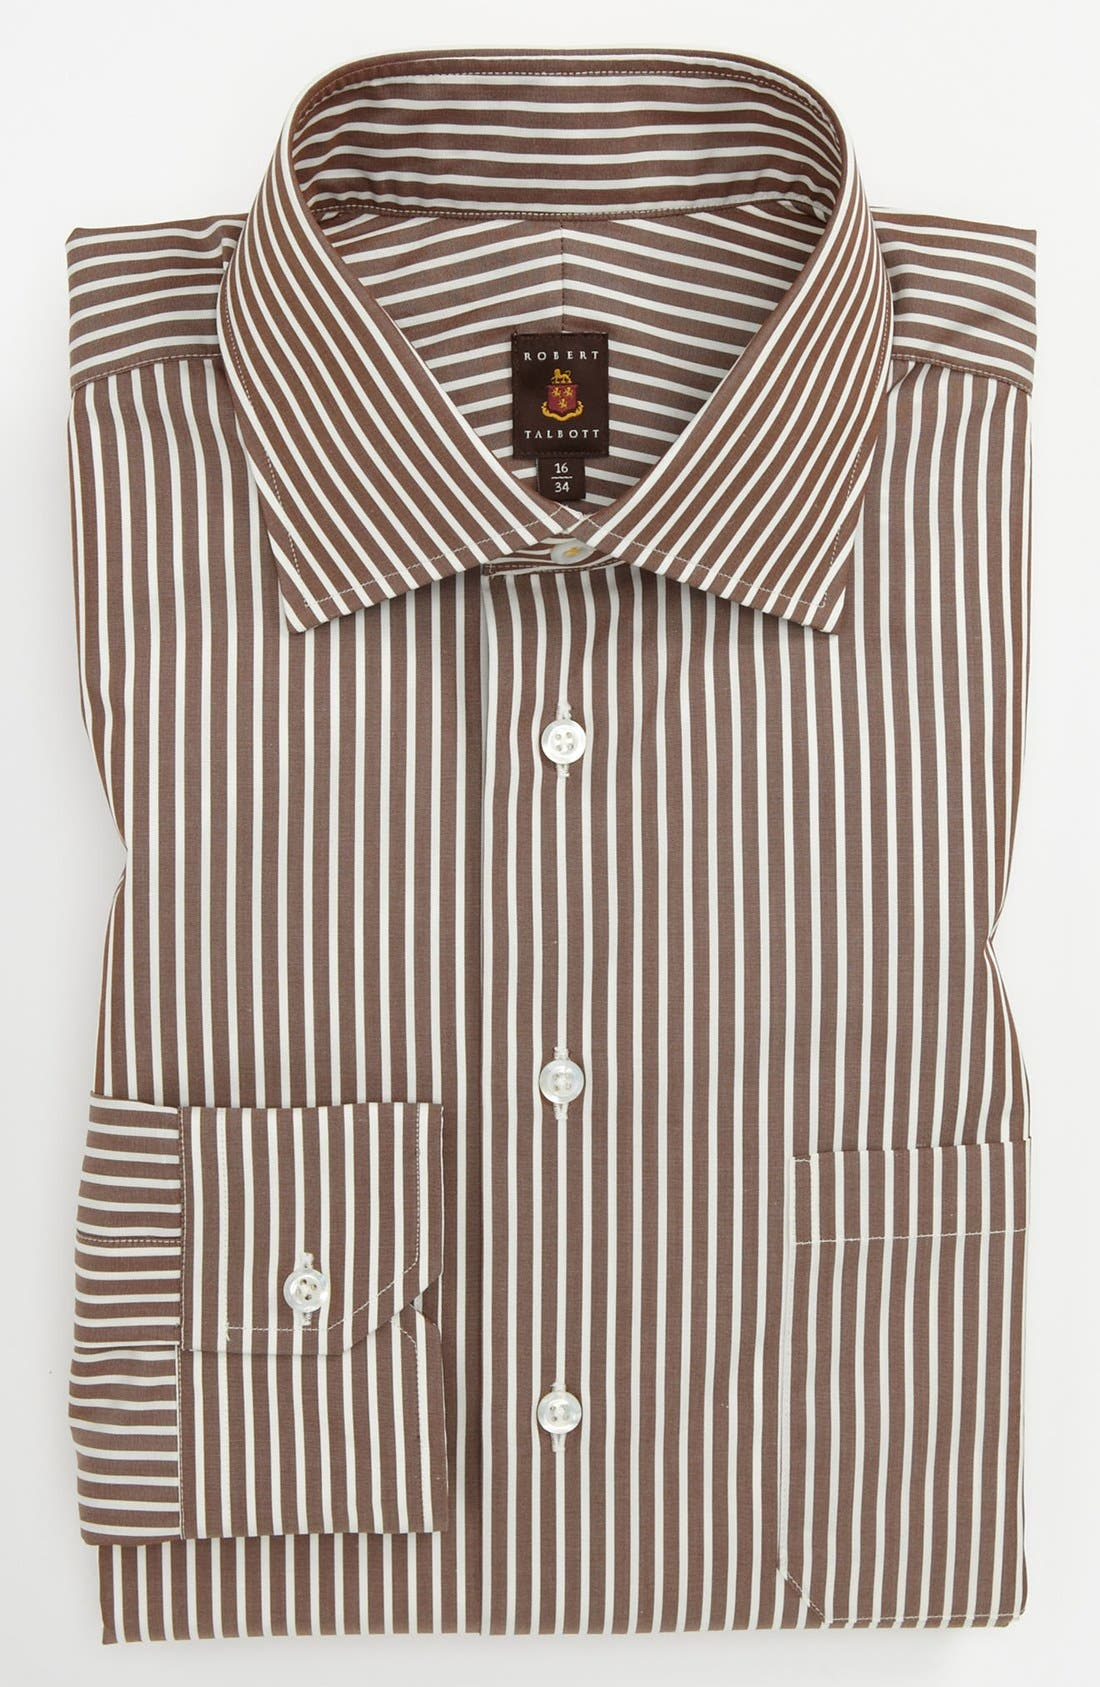 Main Image - Robert Talbott Regular Fit Dress Shirt